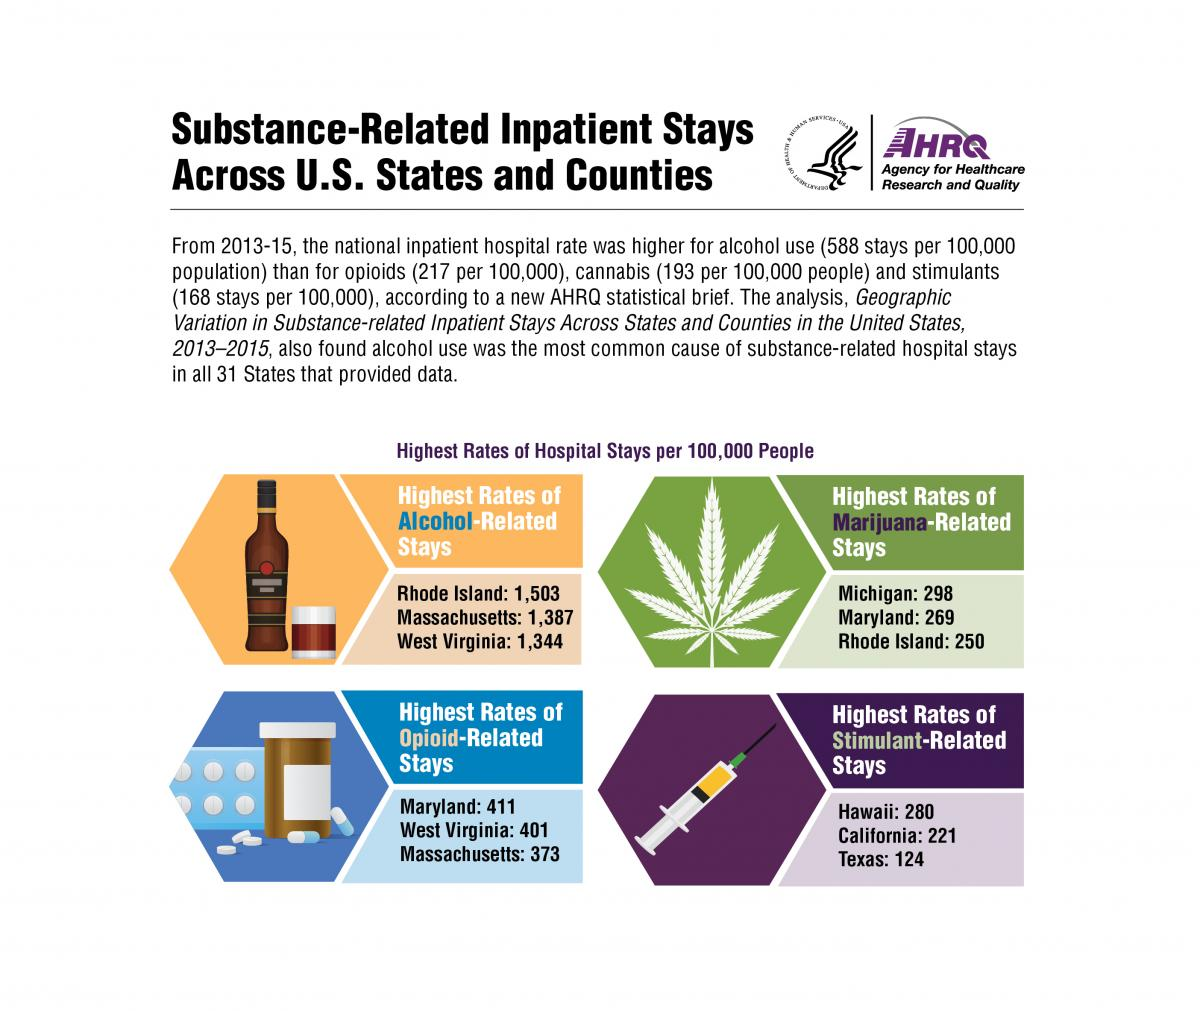 Images representing various substances of abuse that can lead to hospital stays. 2013-2015, highest rates of alcohol-related stays were Rhode Island (1,503), Massachusetts (1,387), West Virginia (1,344); highest rates of opioid-related stays were Maryland (411), West Virginia (401), Massachusetts (373); highest rates of marijuana-related stays were Michigan (298), Maryland (269), Rhode Island (250); highest rates of stimulant-related stays were Hawaii (280), California (221), Texas (124).